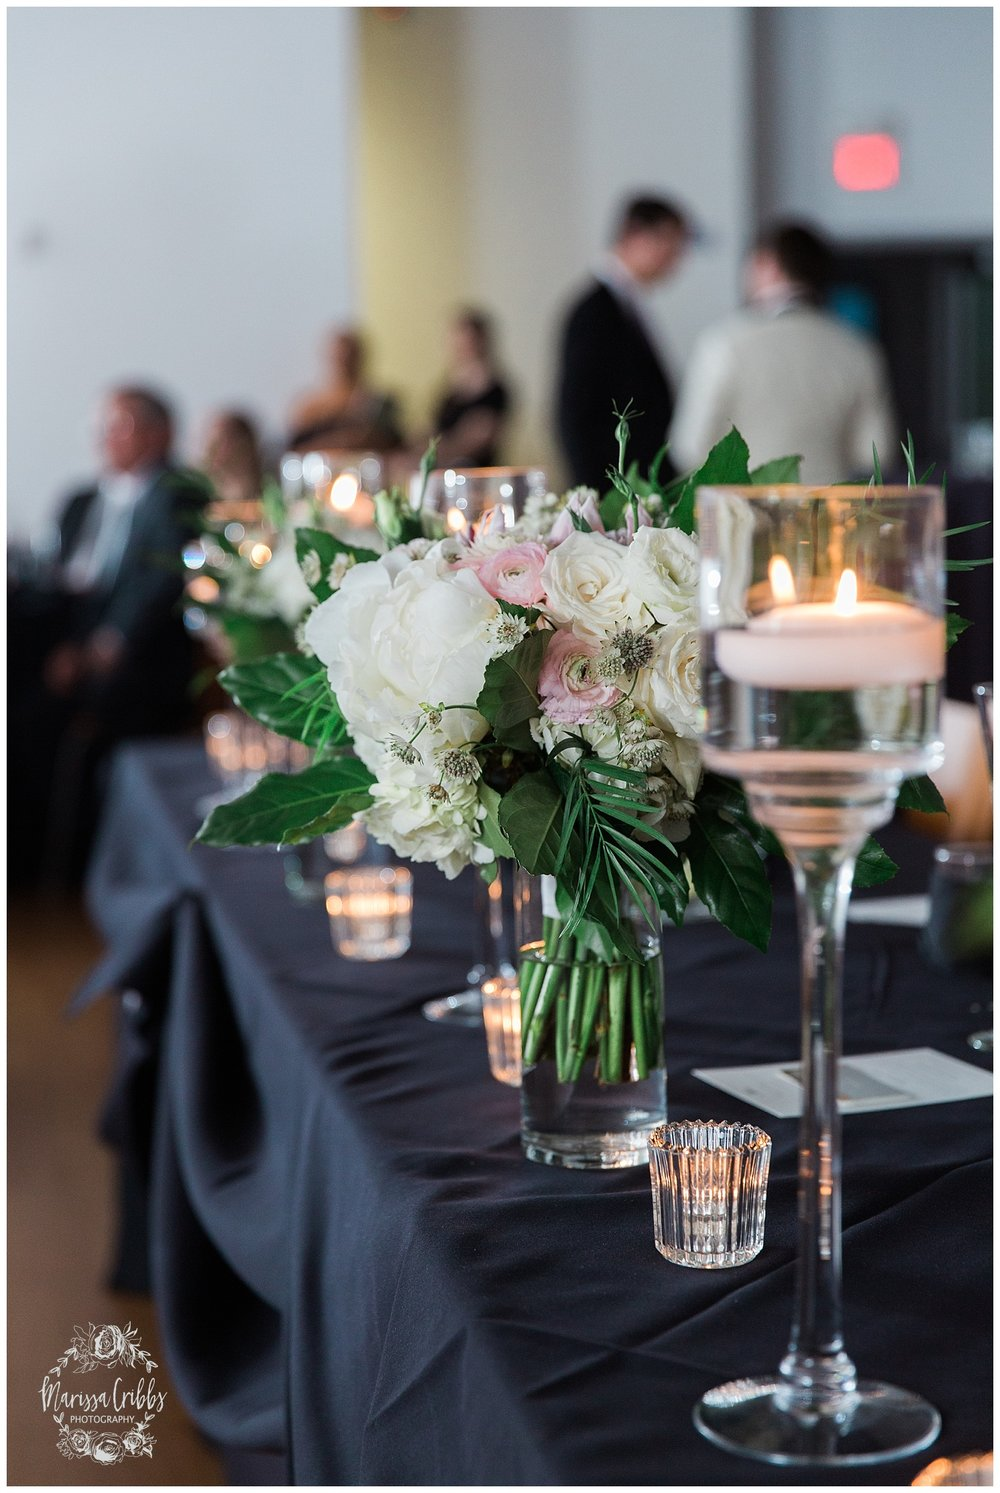 Haley & Steven Reception | The Gallery Event Space | Marissa Cribbs Photography | KC Wedding Photographers_1658.jpg